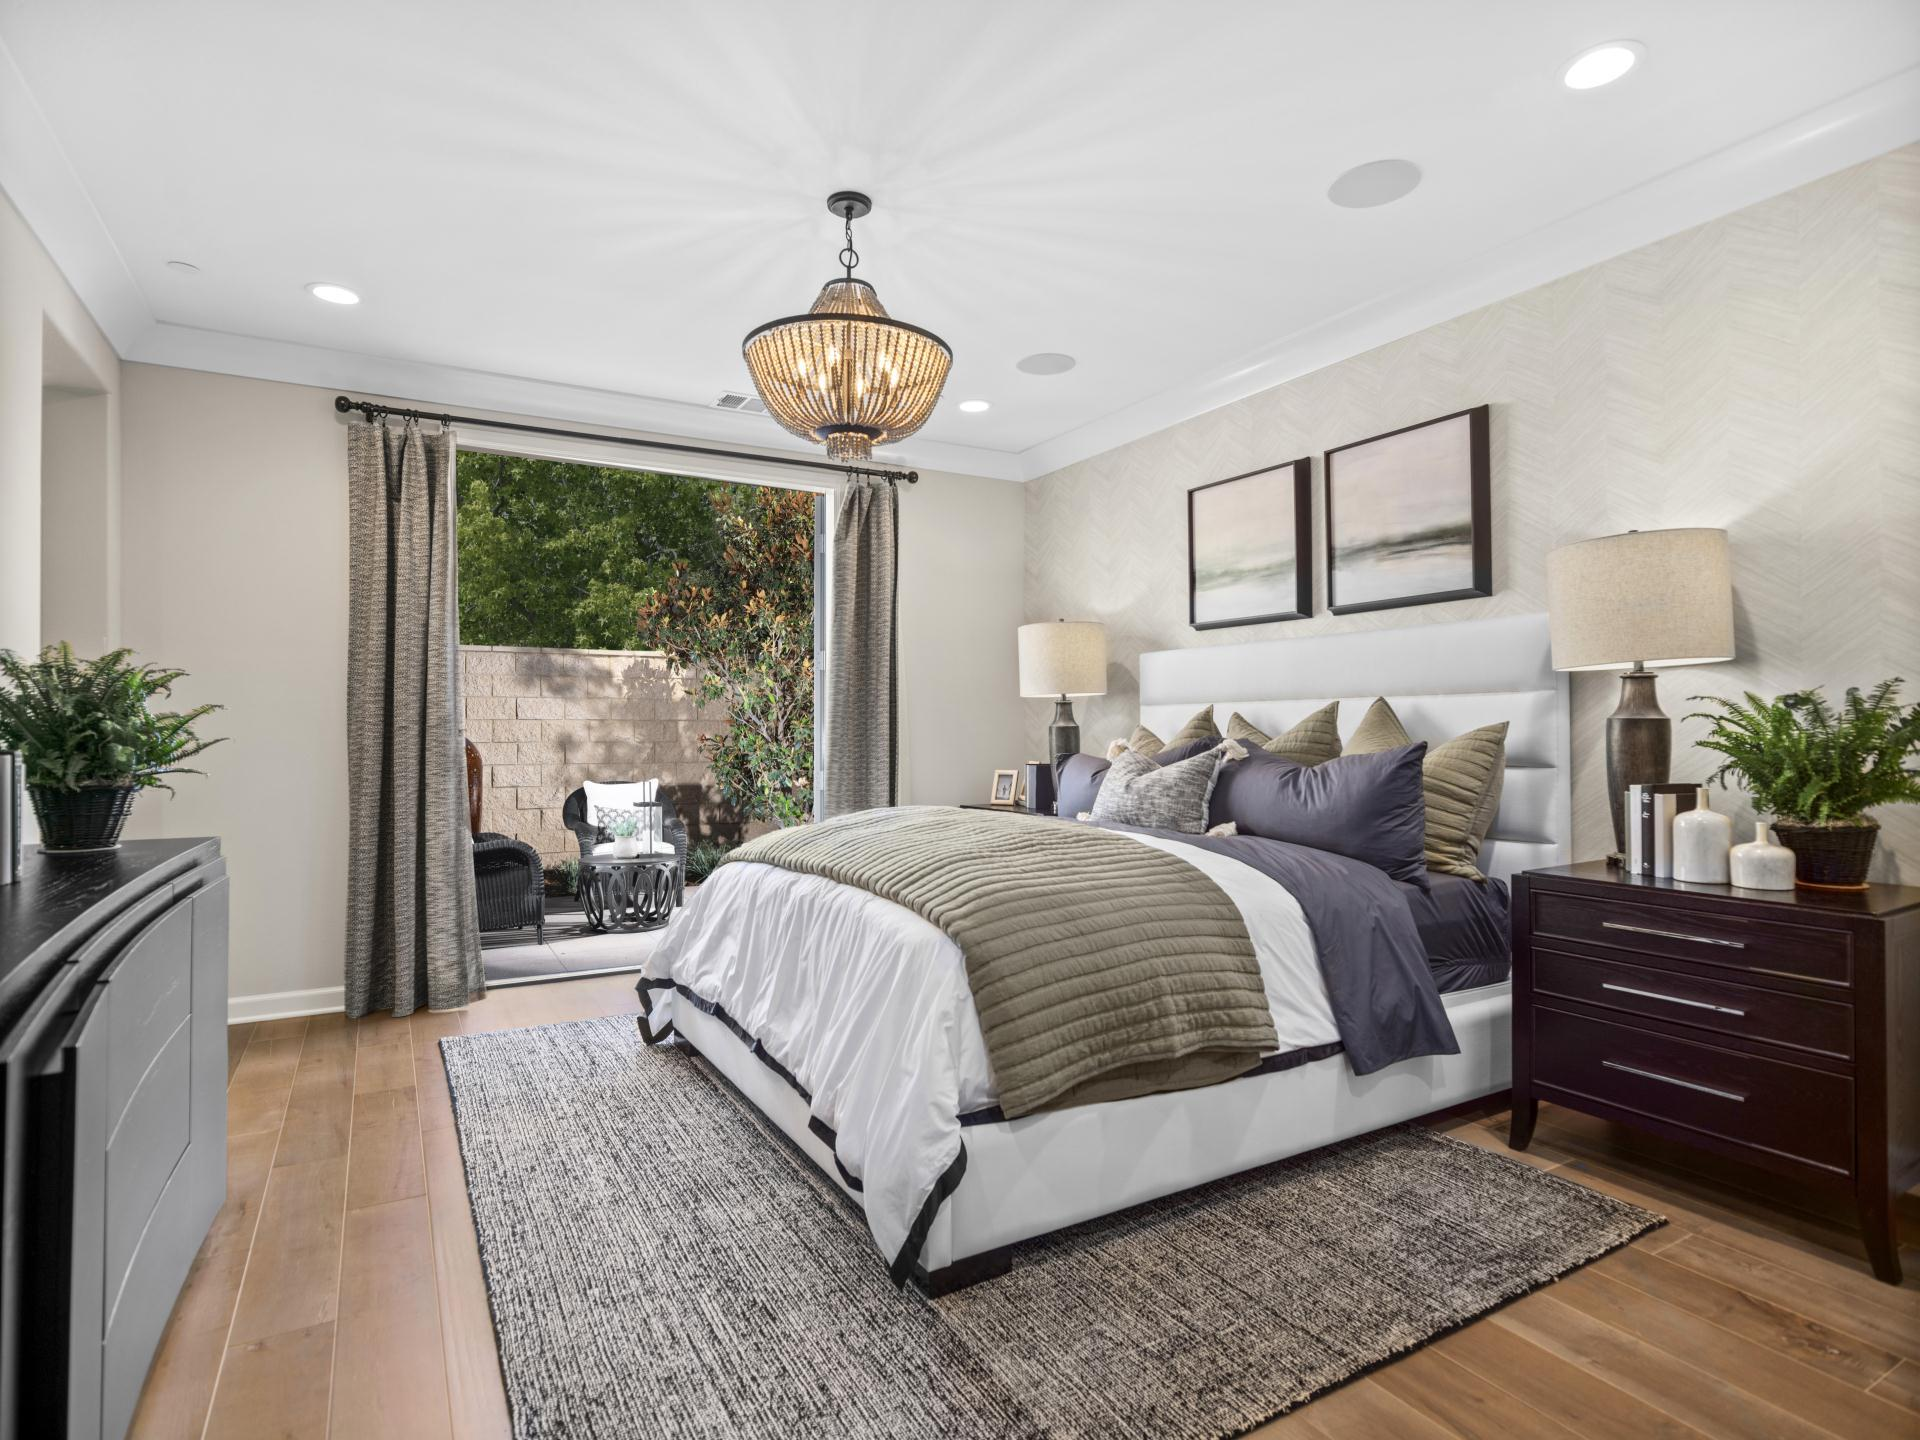 Bedroom featured in the Plan 2 By Brandywine Homes in Los Angeles, CA